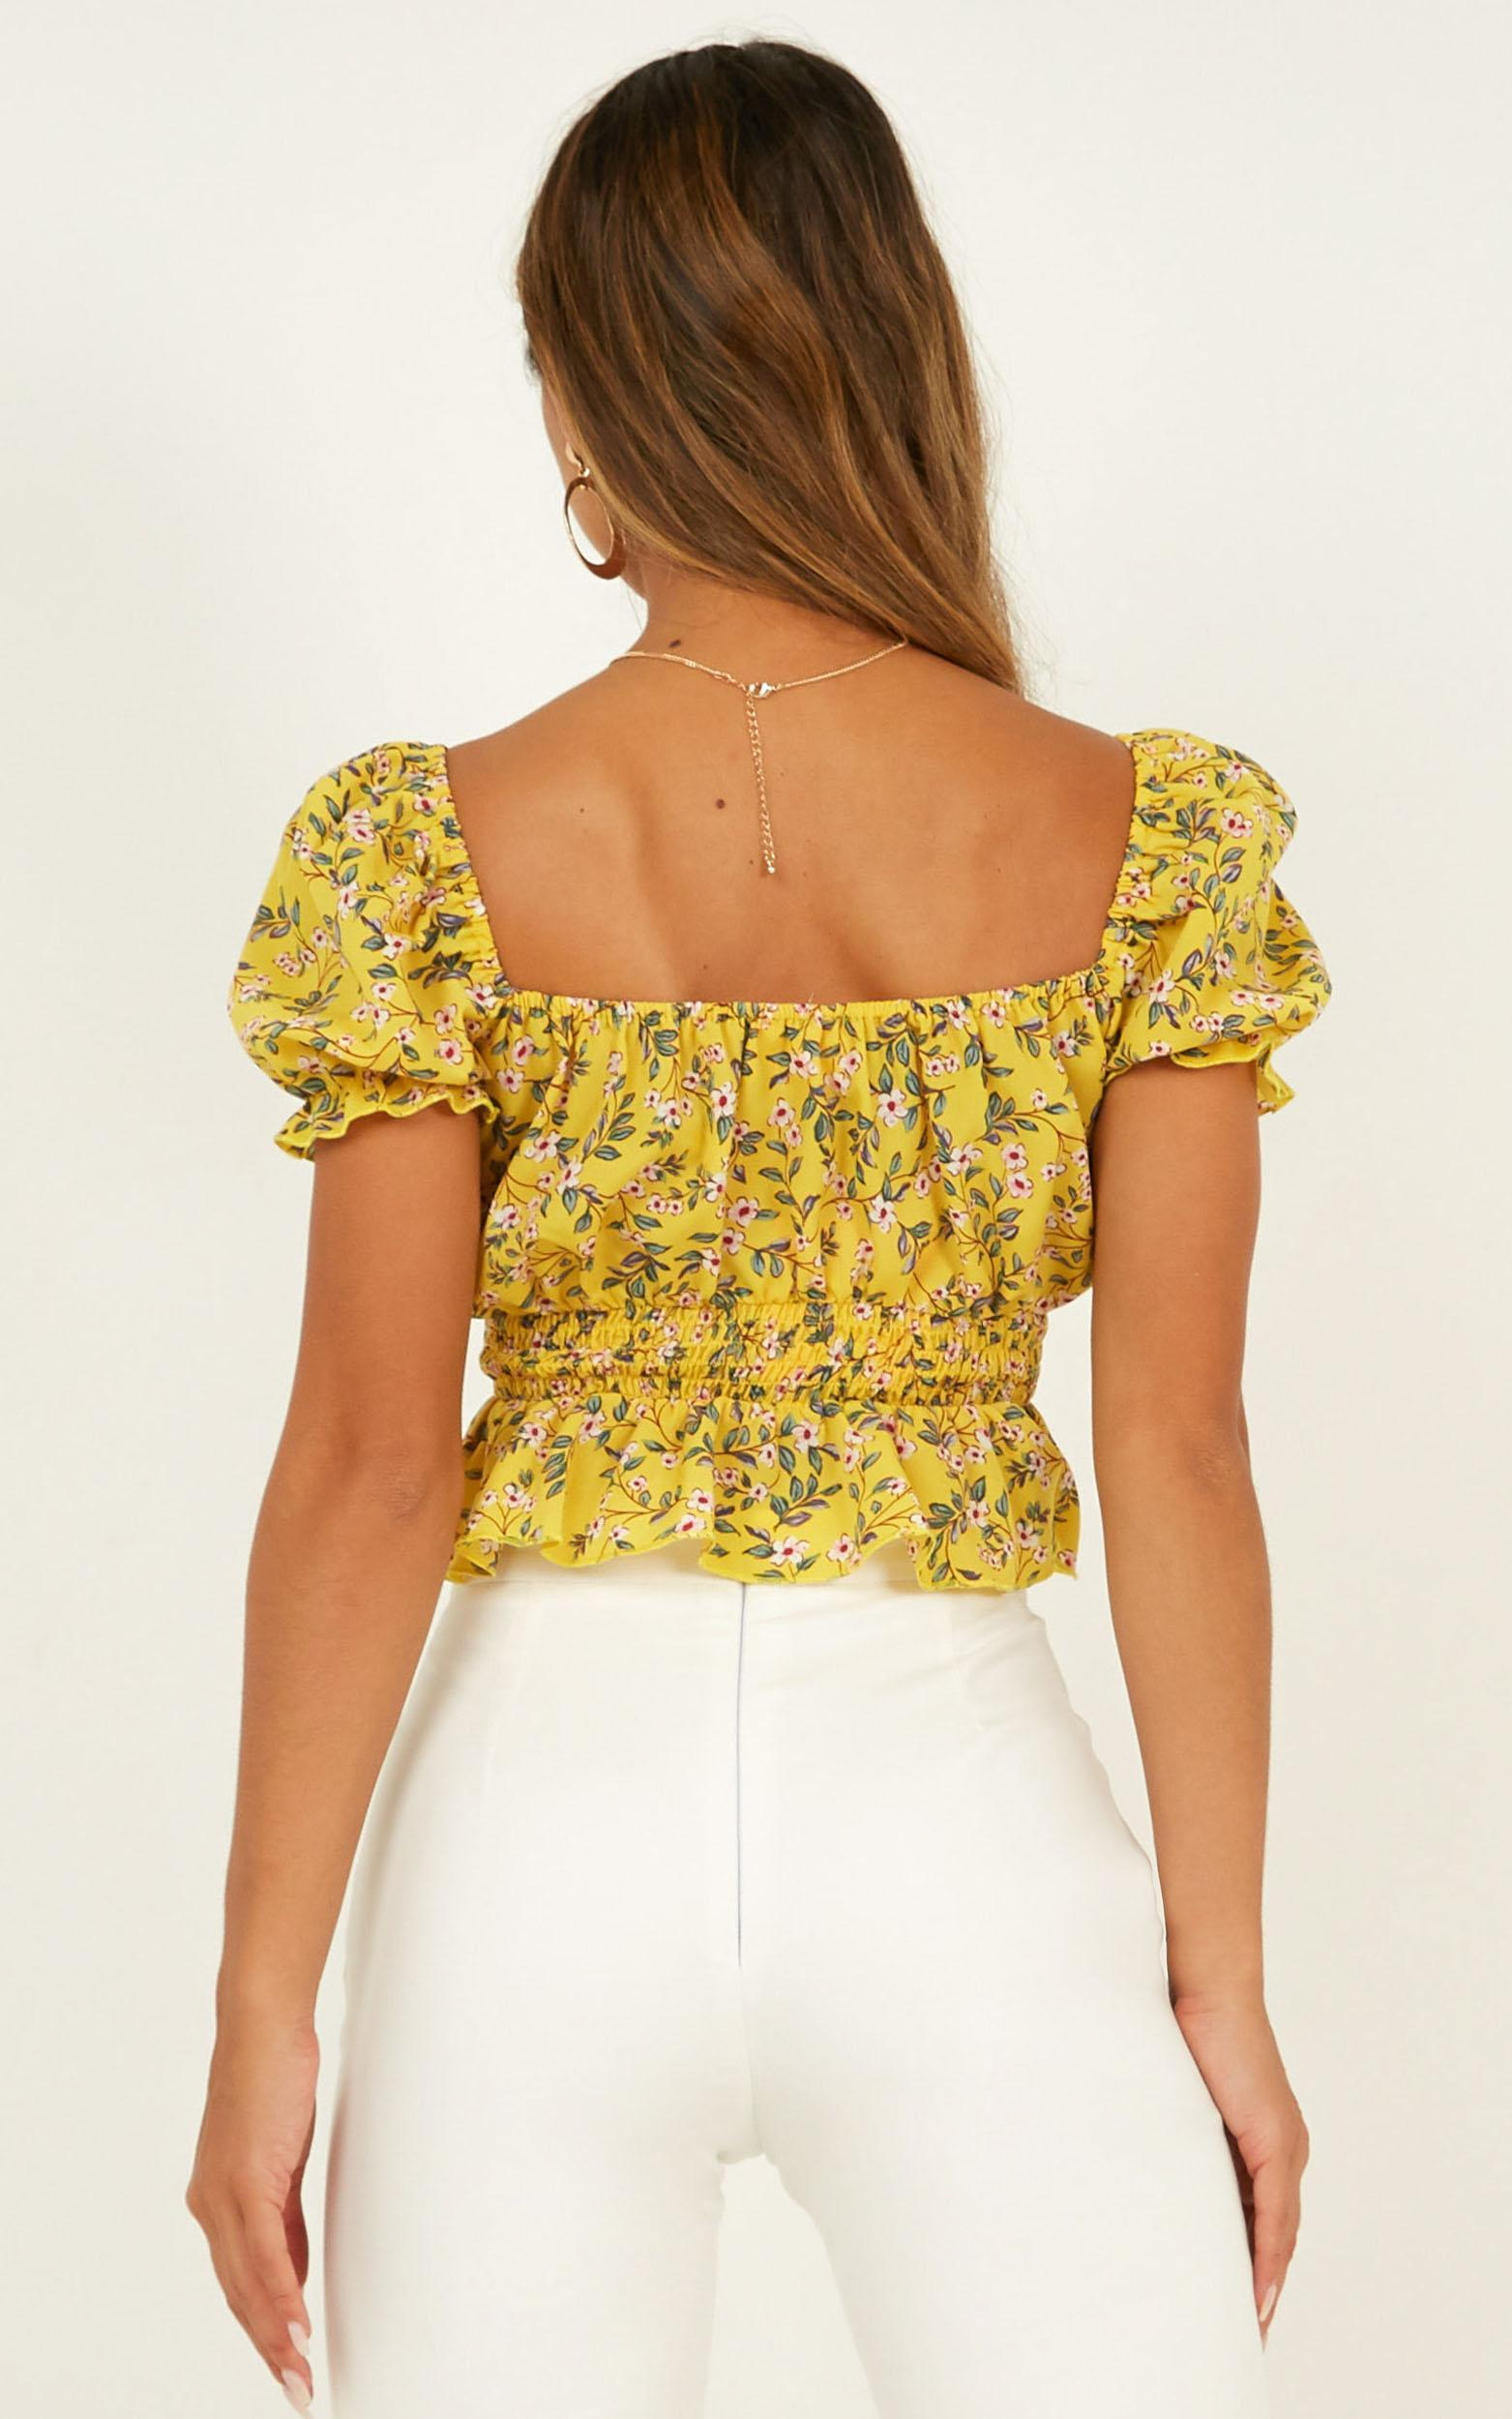 Run Away Now Top In yellow floral - 14 (XL), Yellow, hi-res image number null